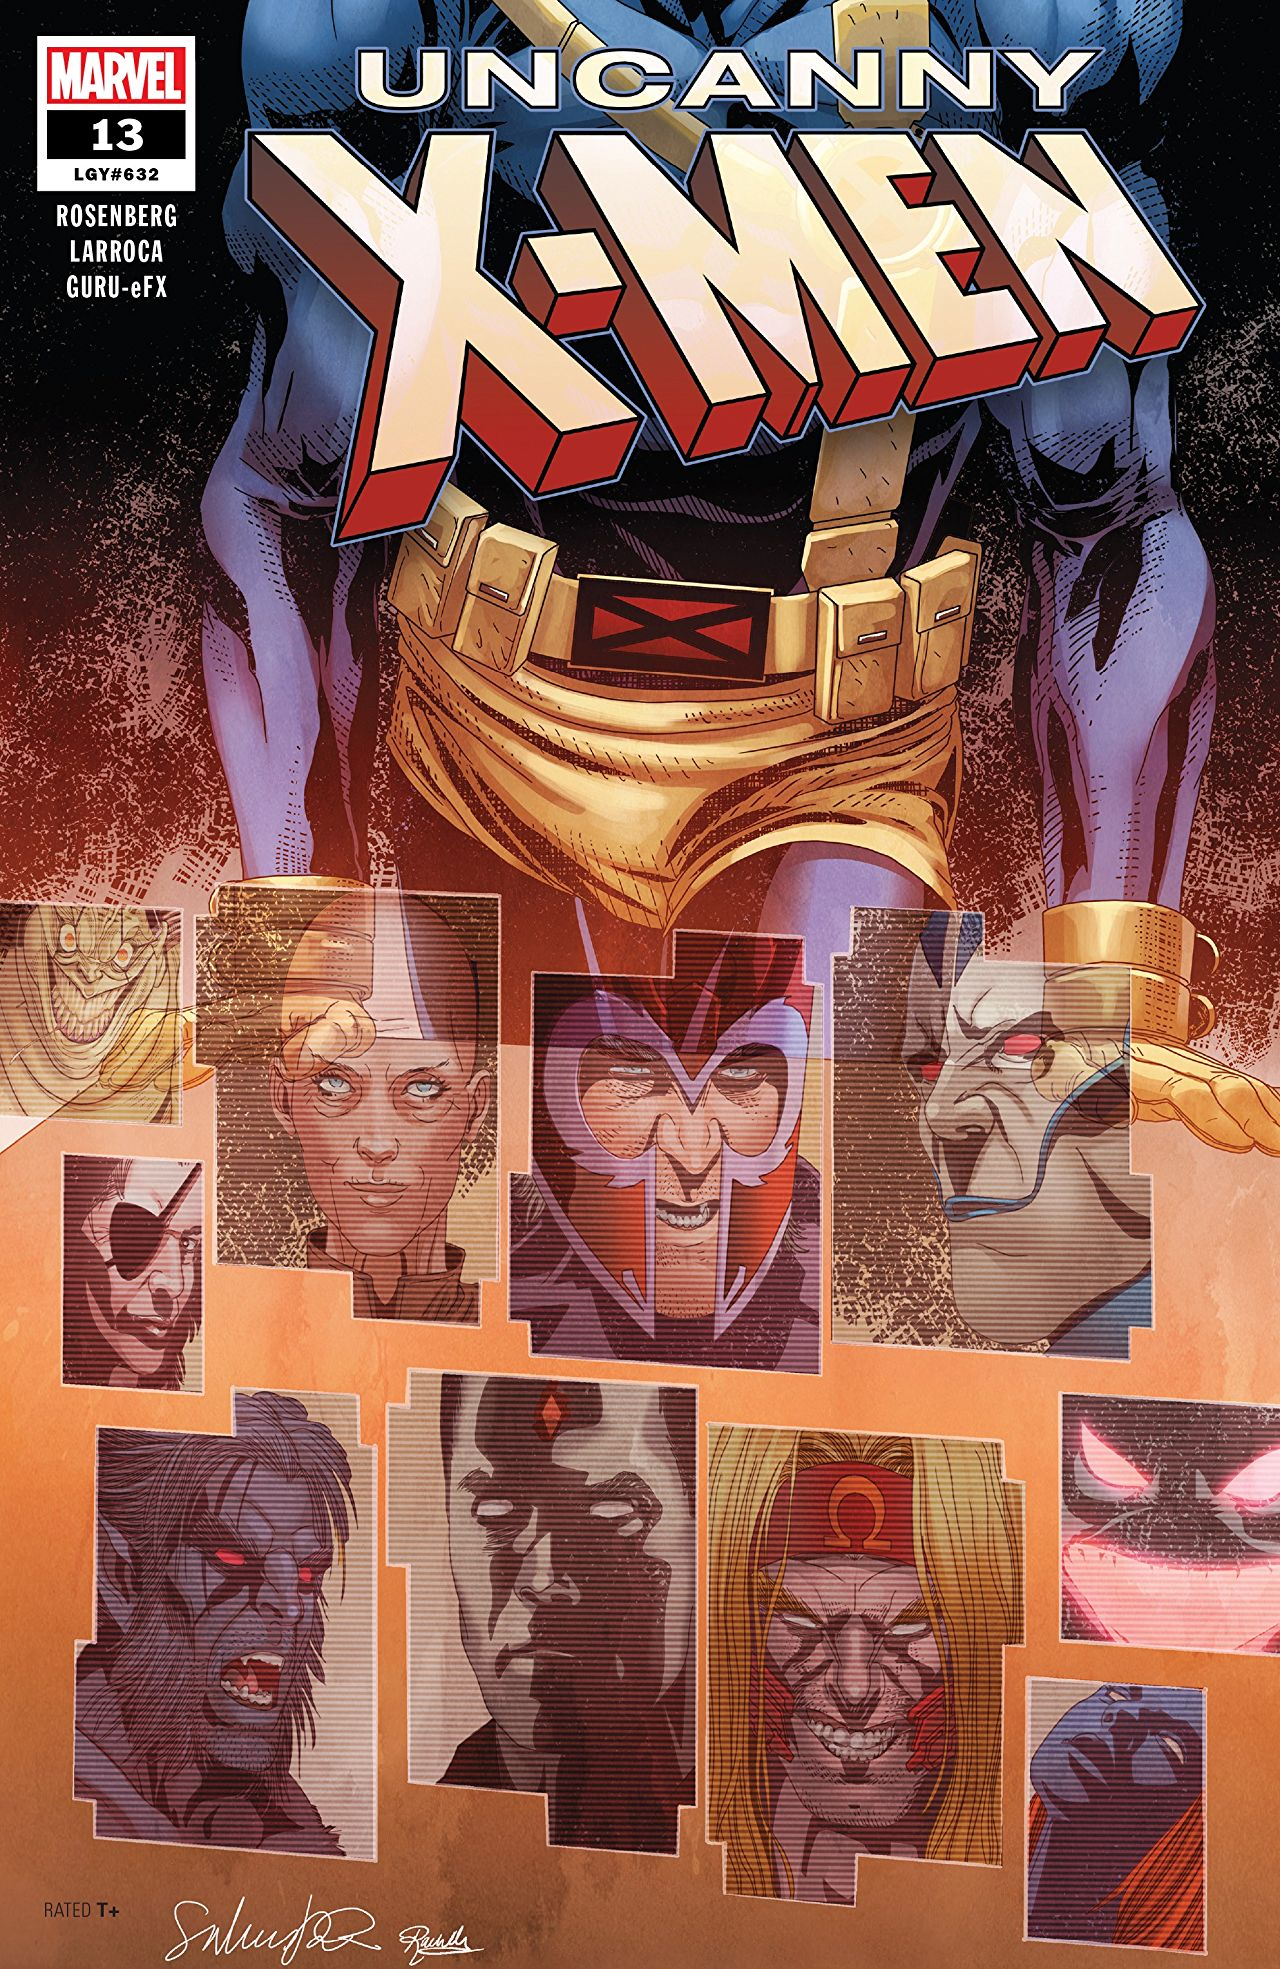 Marvel Preview: Uncanny X-Men #13